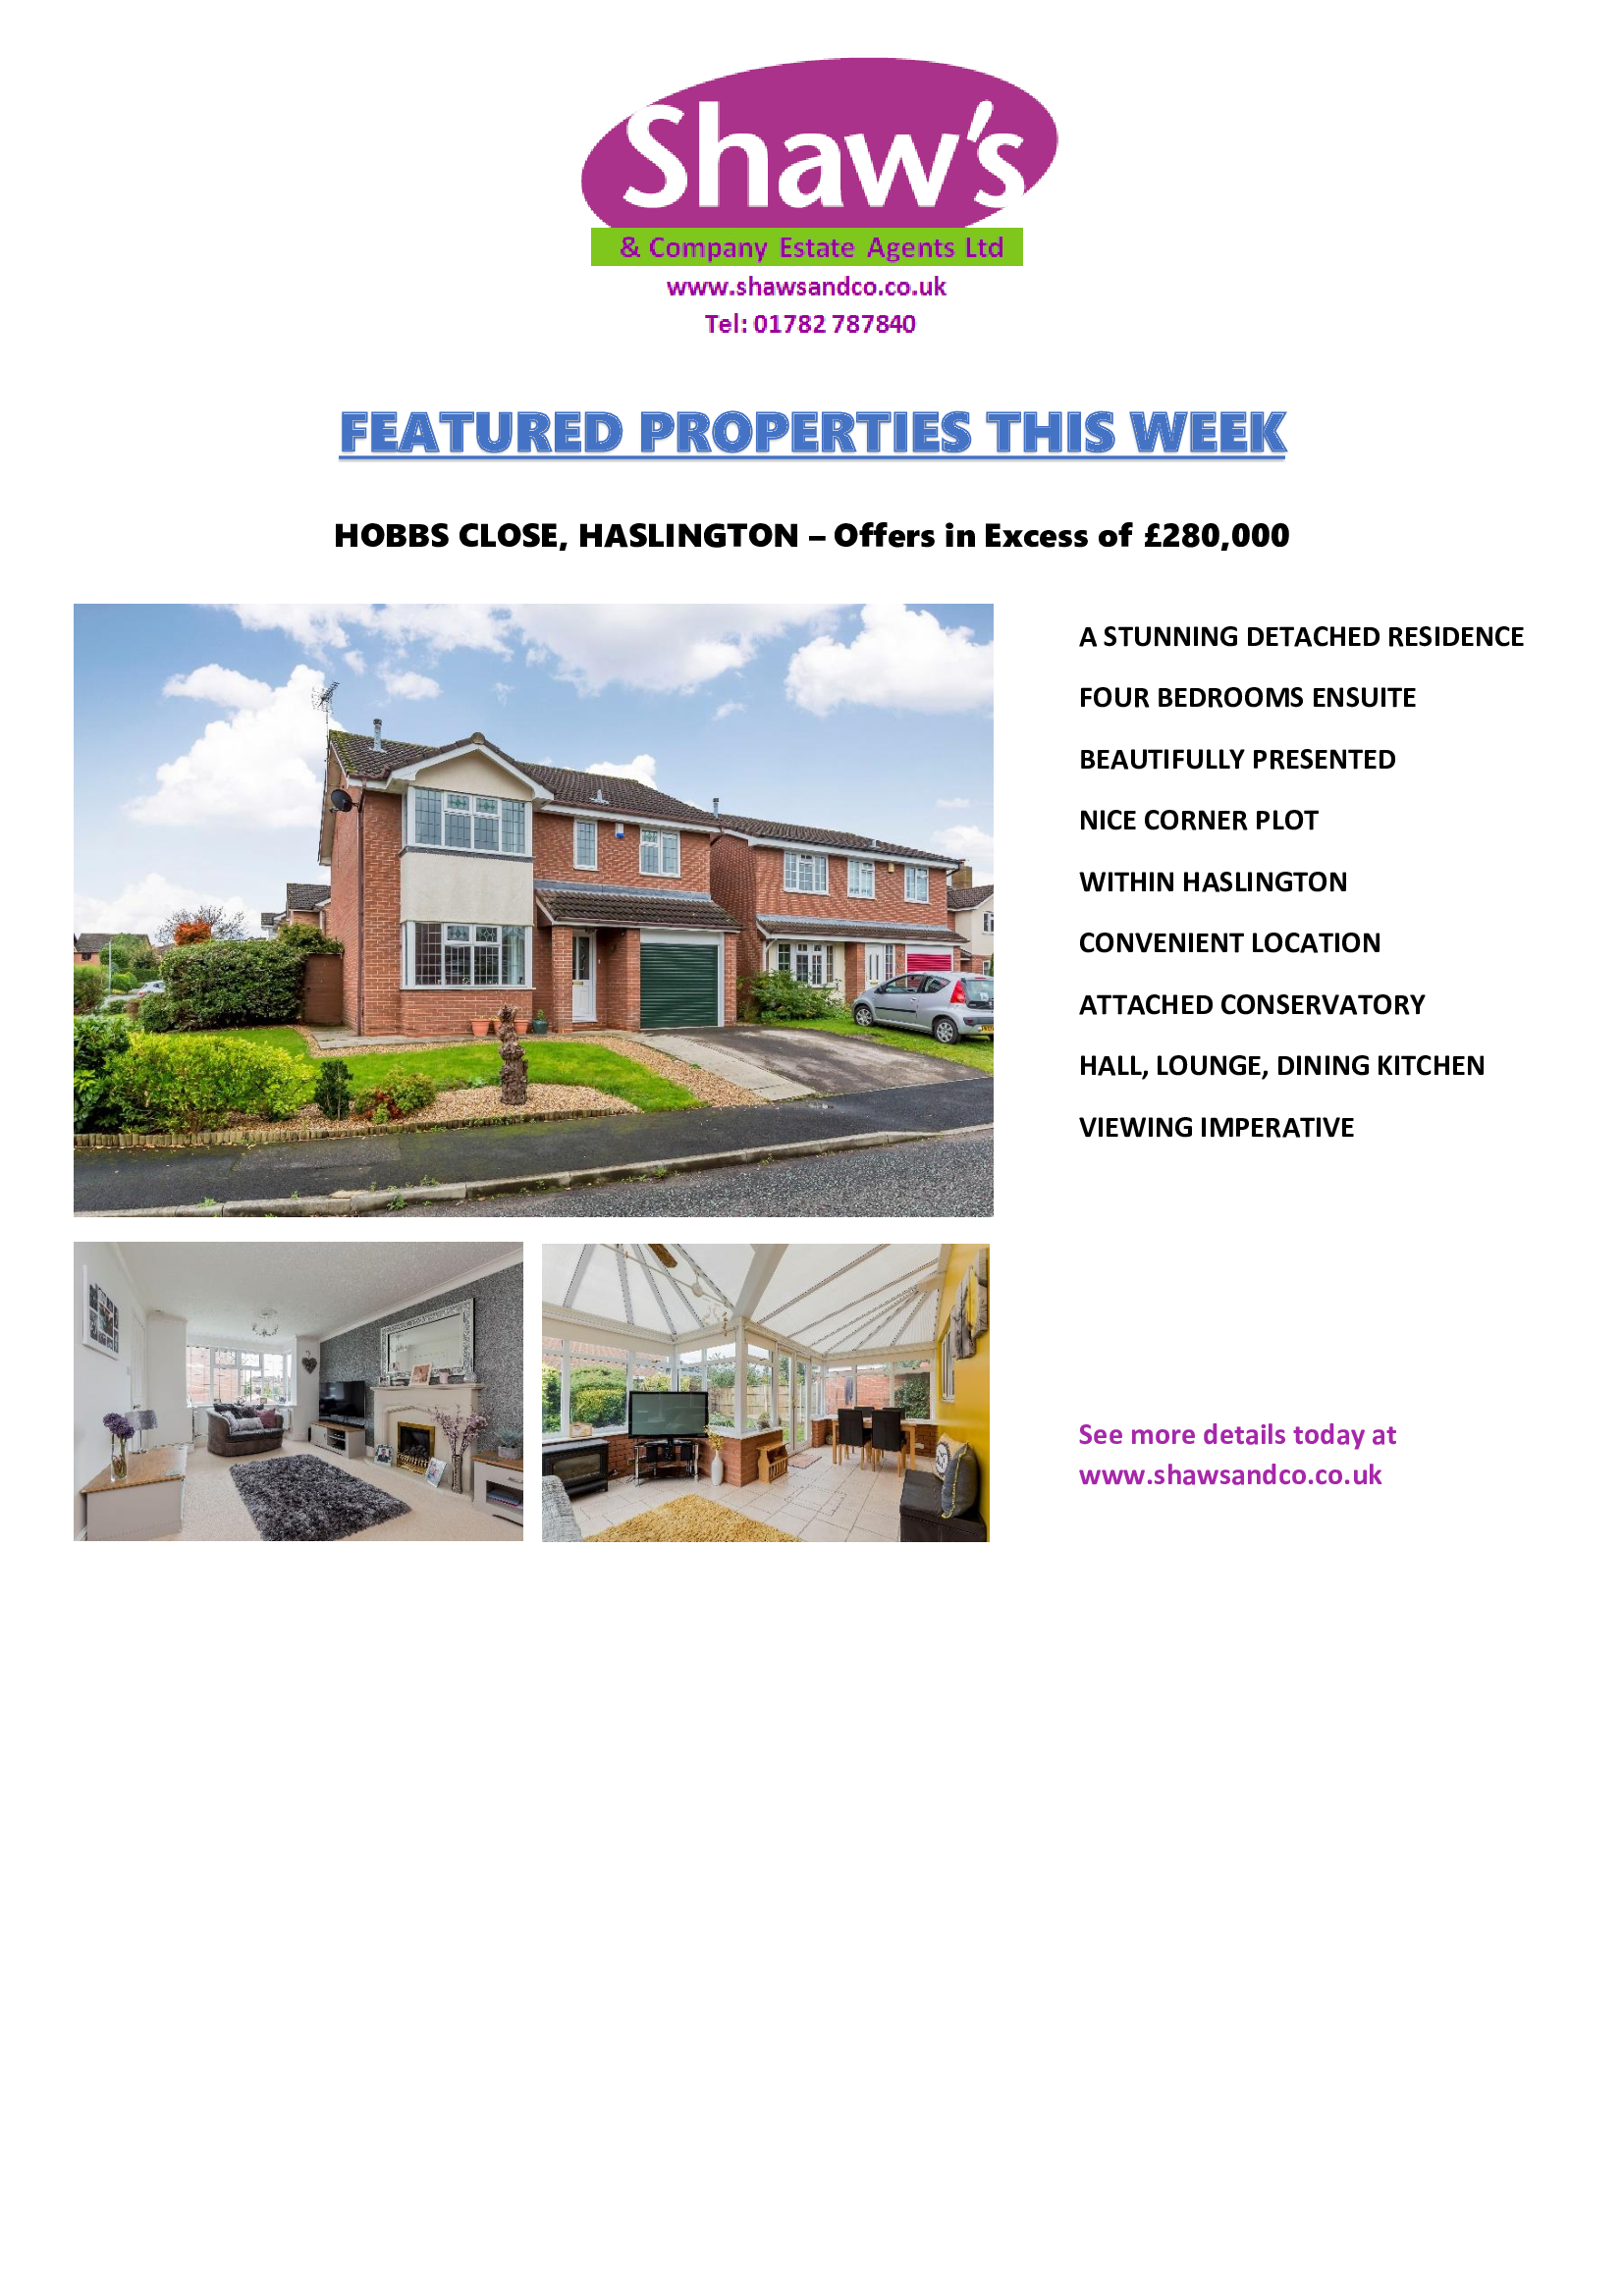 NEW & FEATURED PROPERTIES OF THE WEEK